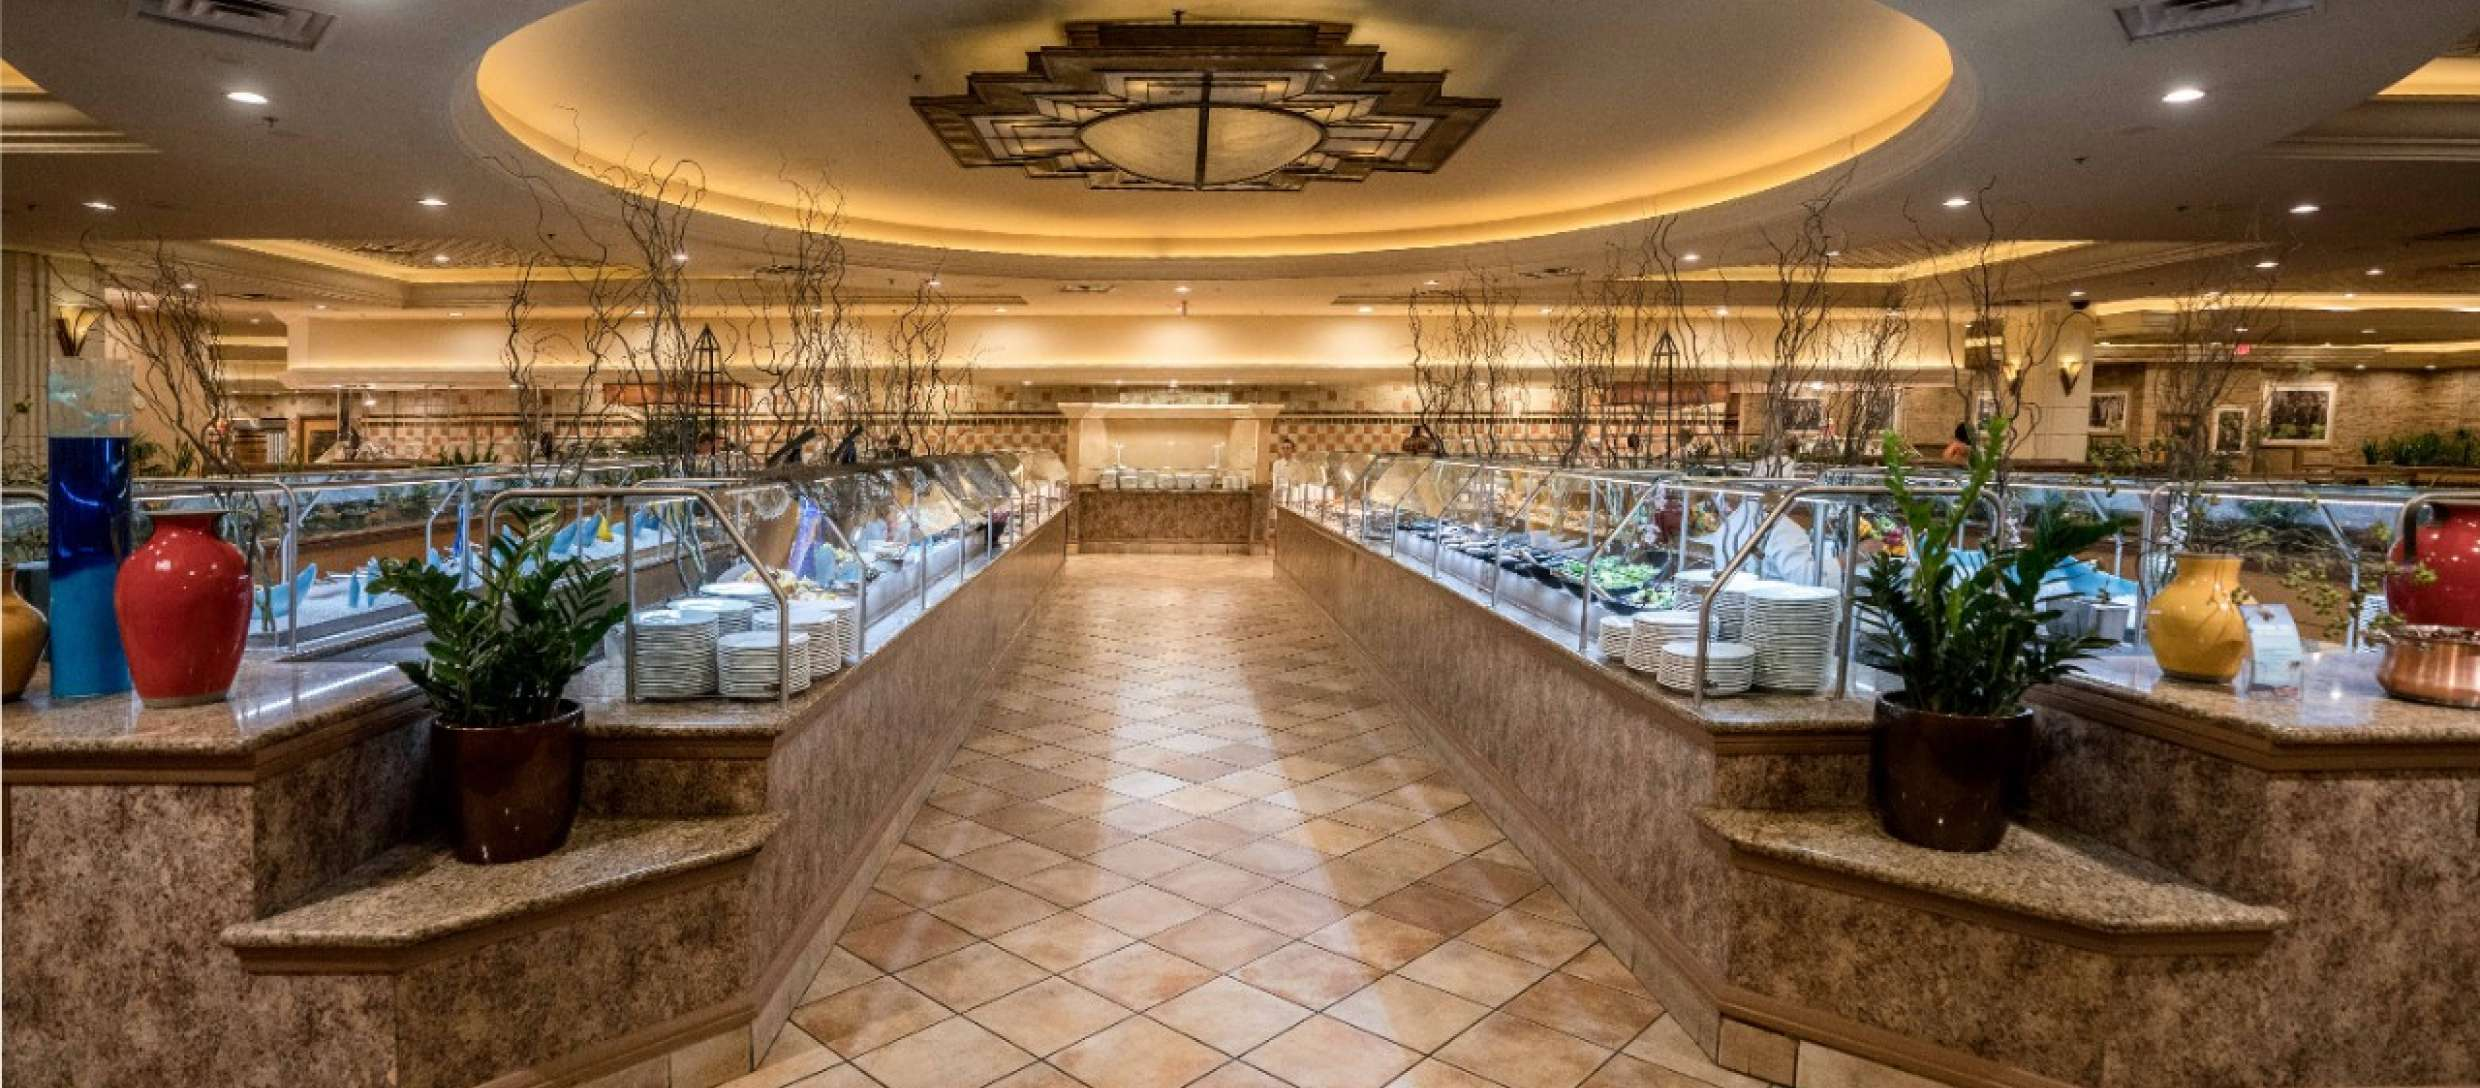 The interior of a buffet